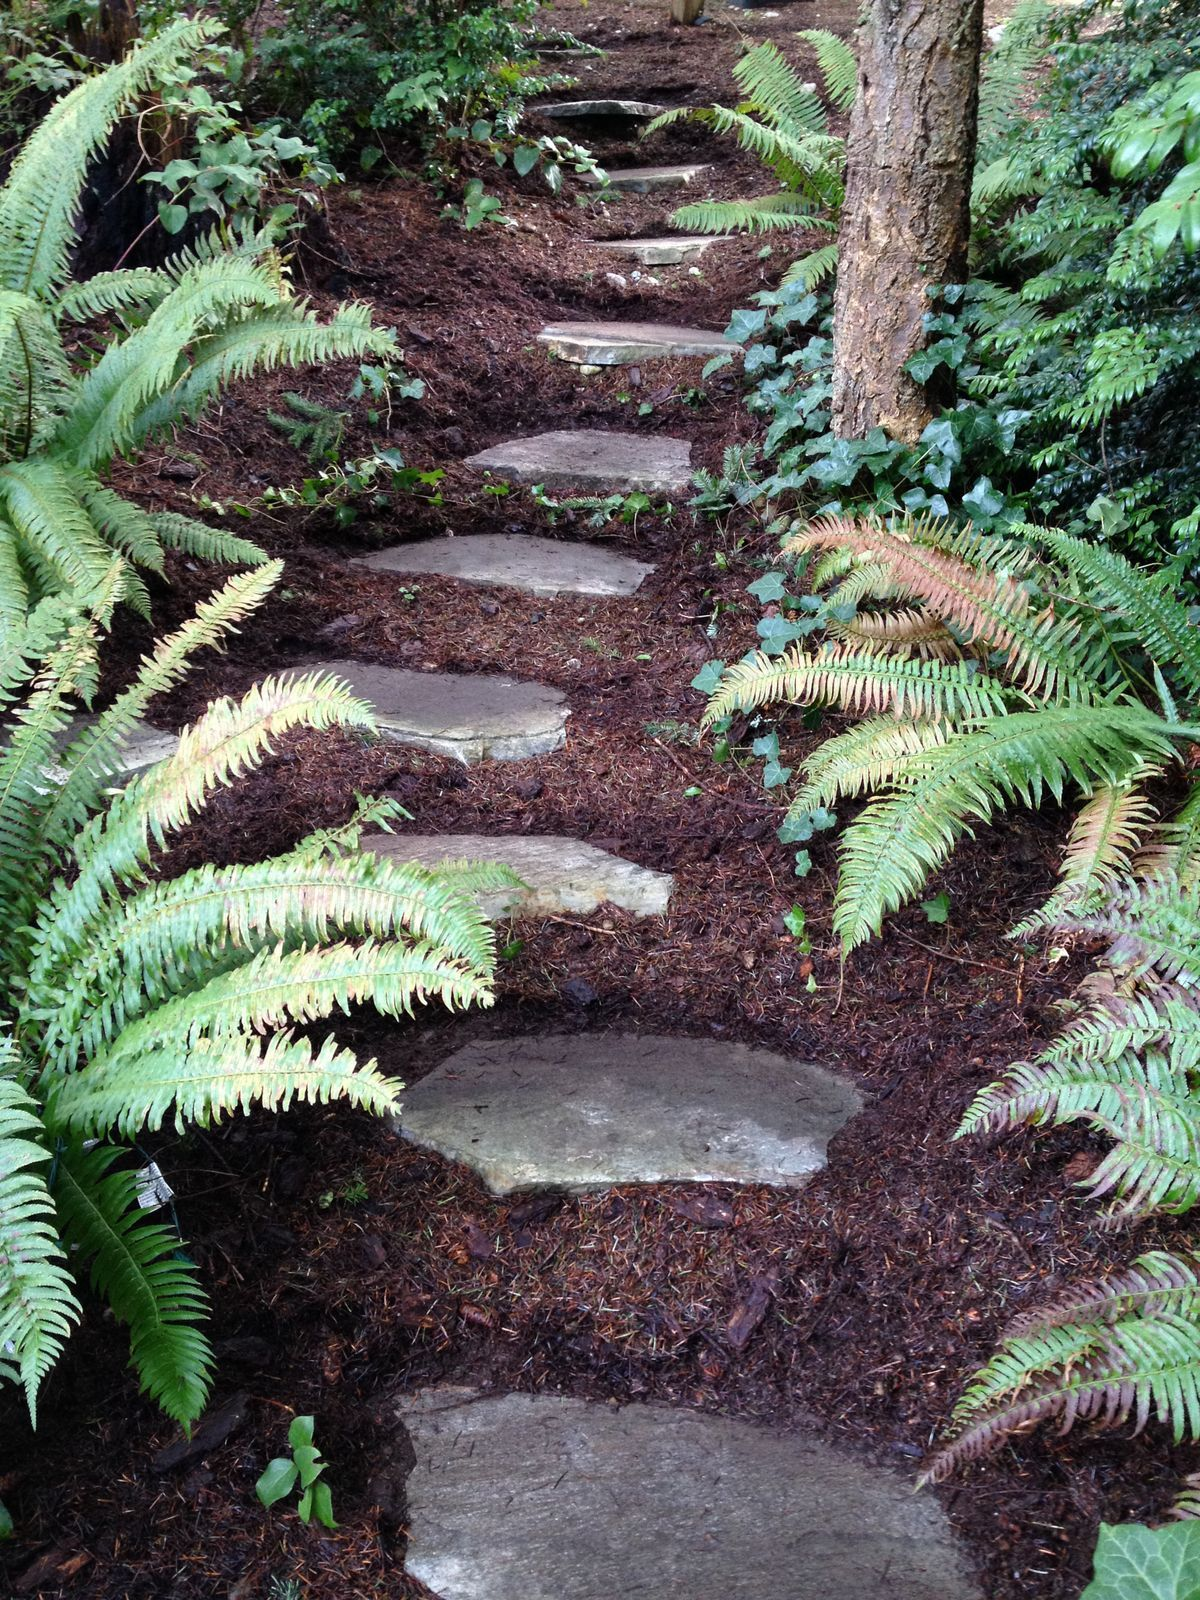 Pathway and ferns